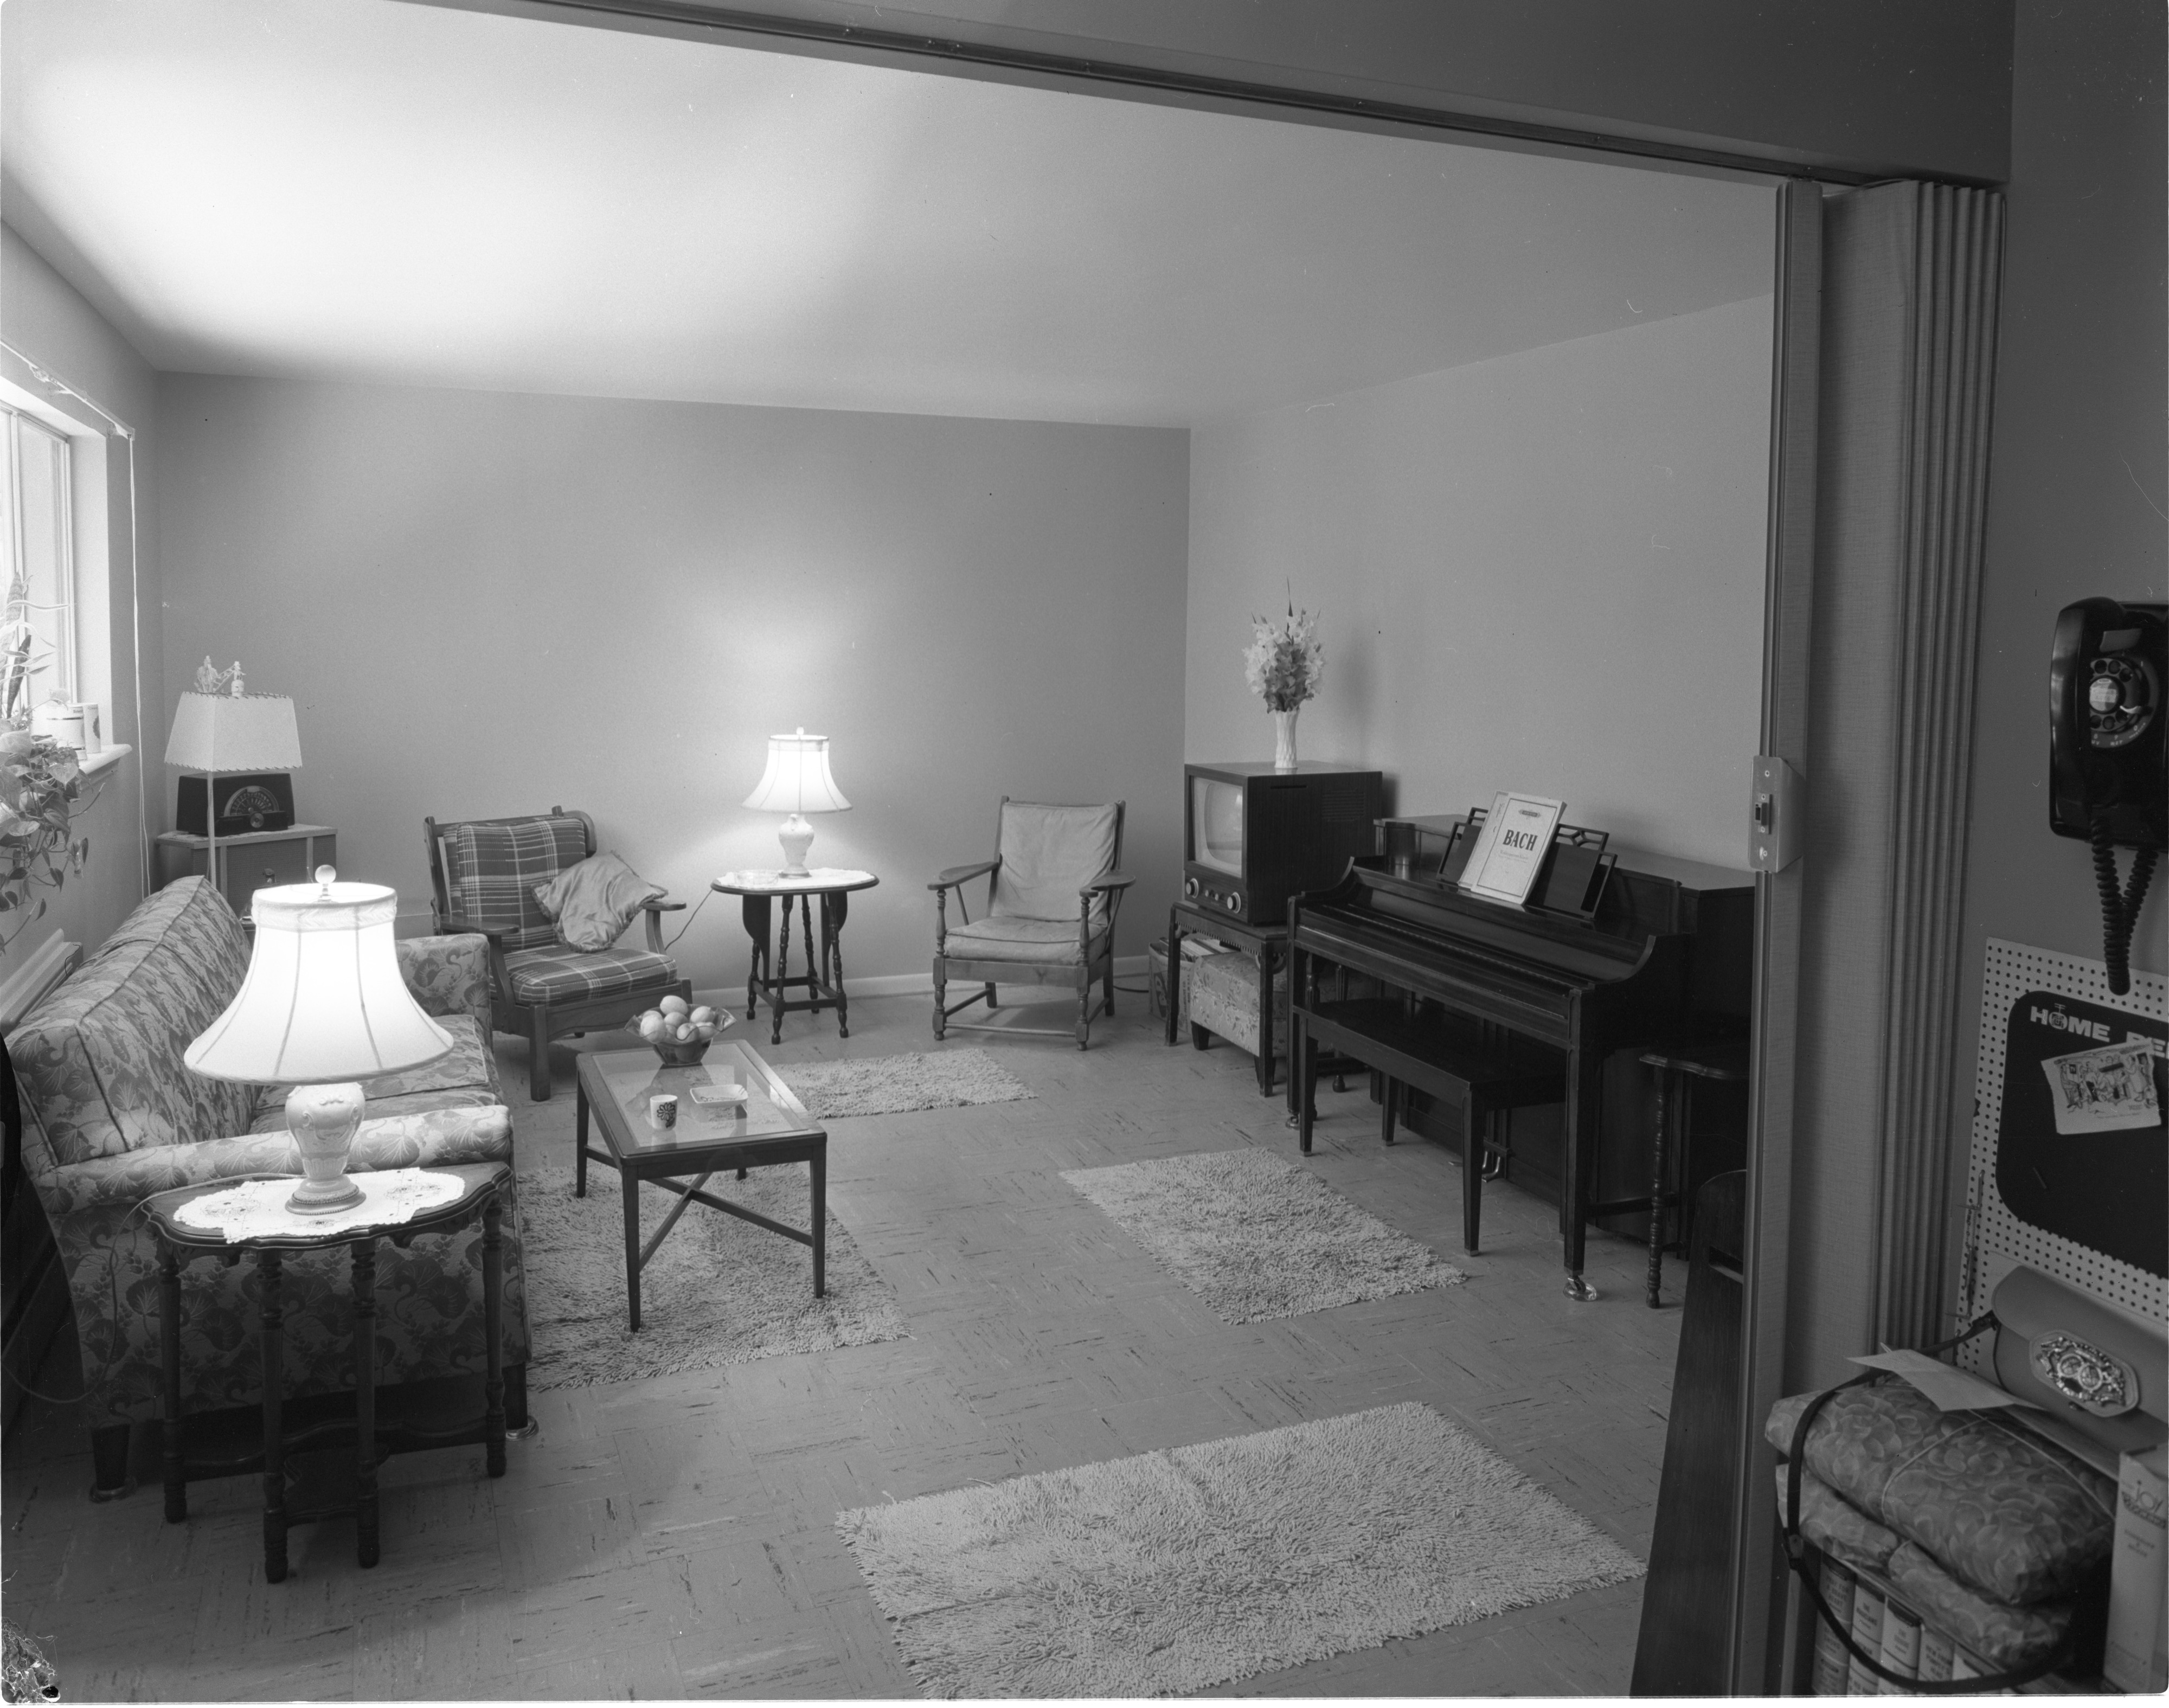 Newly Constructed Huron Arms Apartments - Living Room, September 1956 image